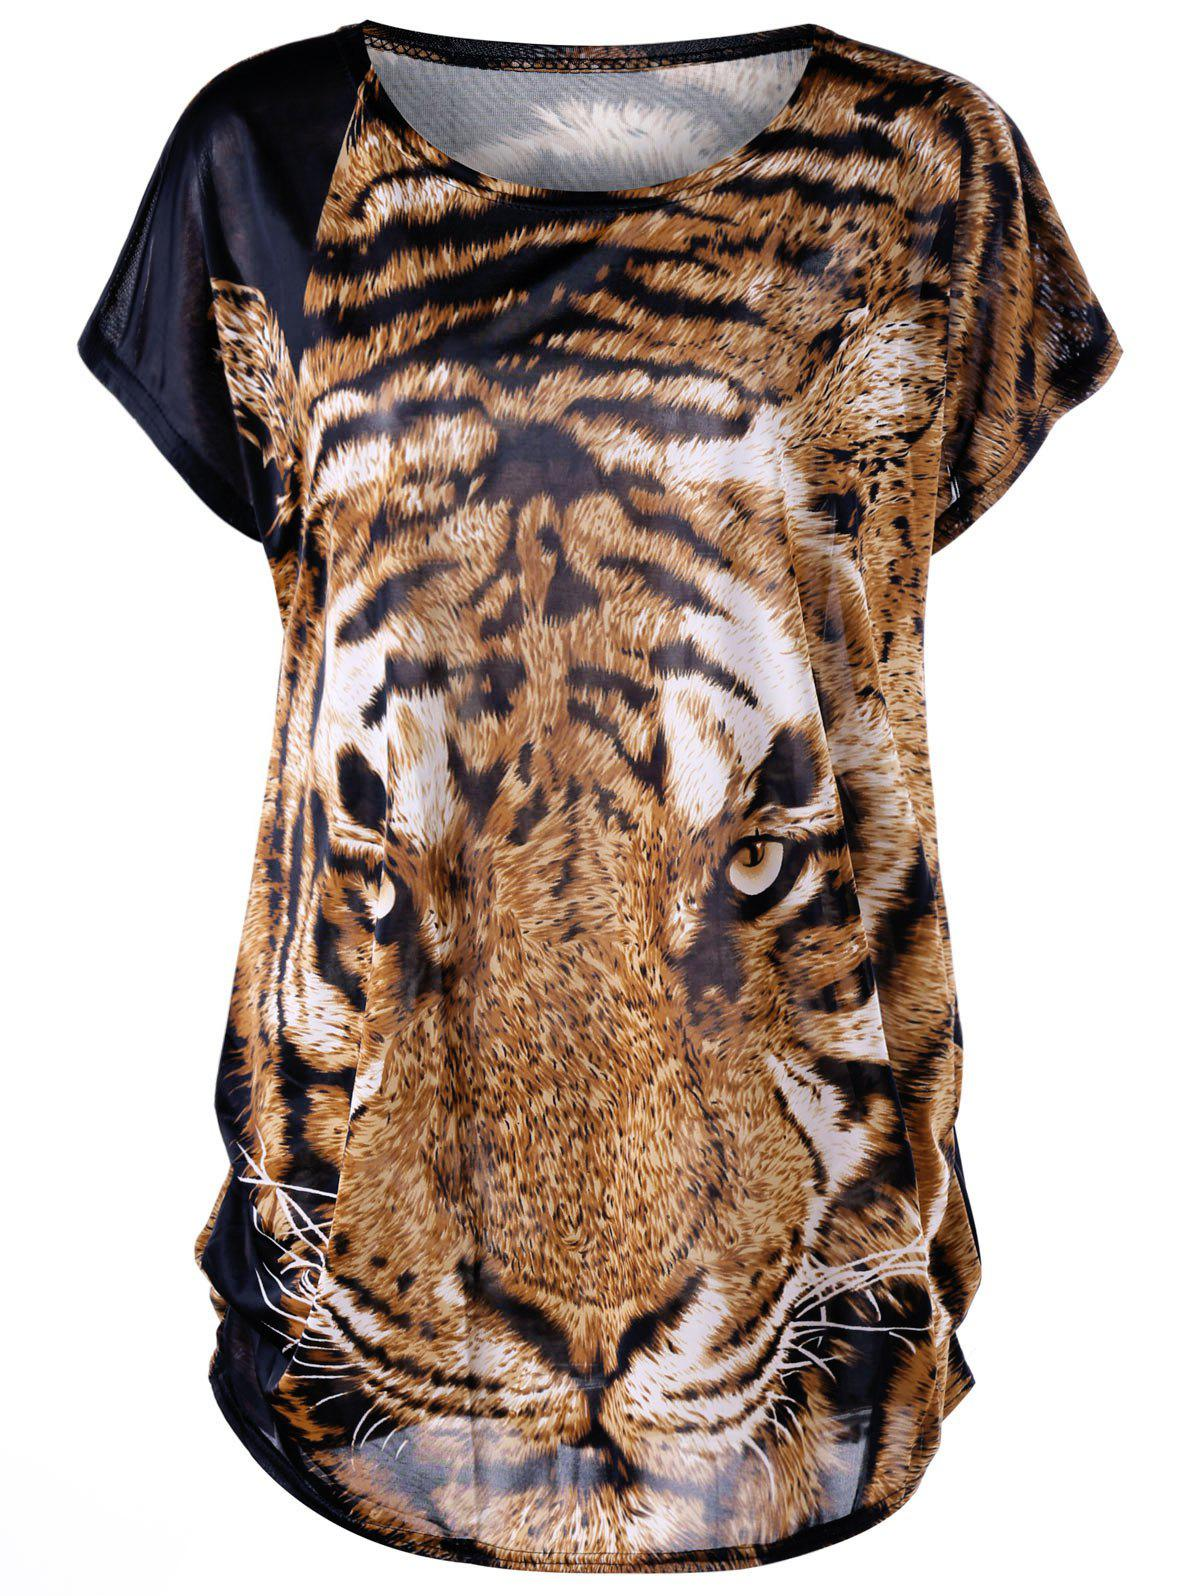 Tiger Print Plus Size Baggy TopWOMEN<br><br>Size: ONE SIZE; Color: TIGER PRINT; Material: Polyester,Spandex; Shirt Length: Long; Sleeve Length: Short; Collar: Round Neck; Style: Casual; Season: Summer; Pattern Type: Animal; Weight: 0.3000kg; Package Contents: 1 x Top;